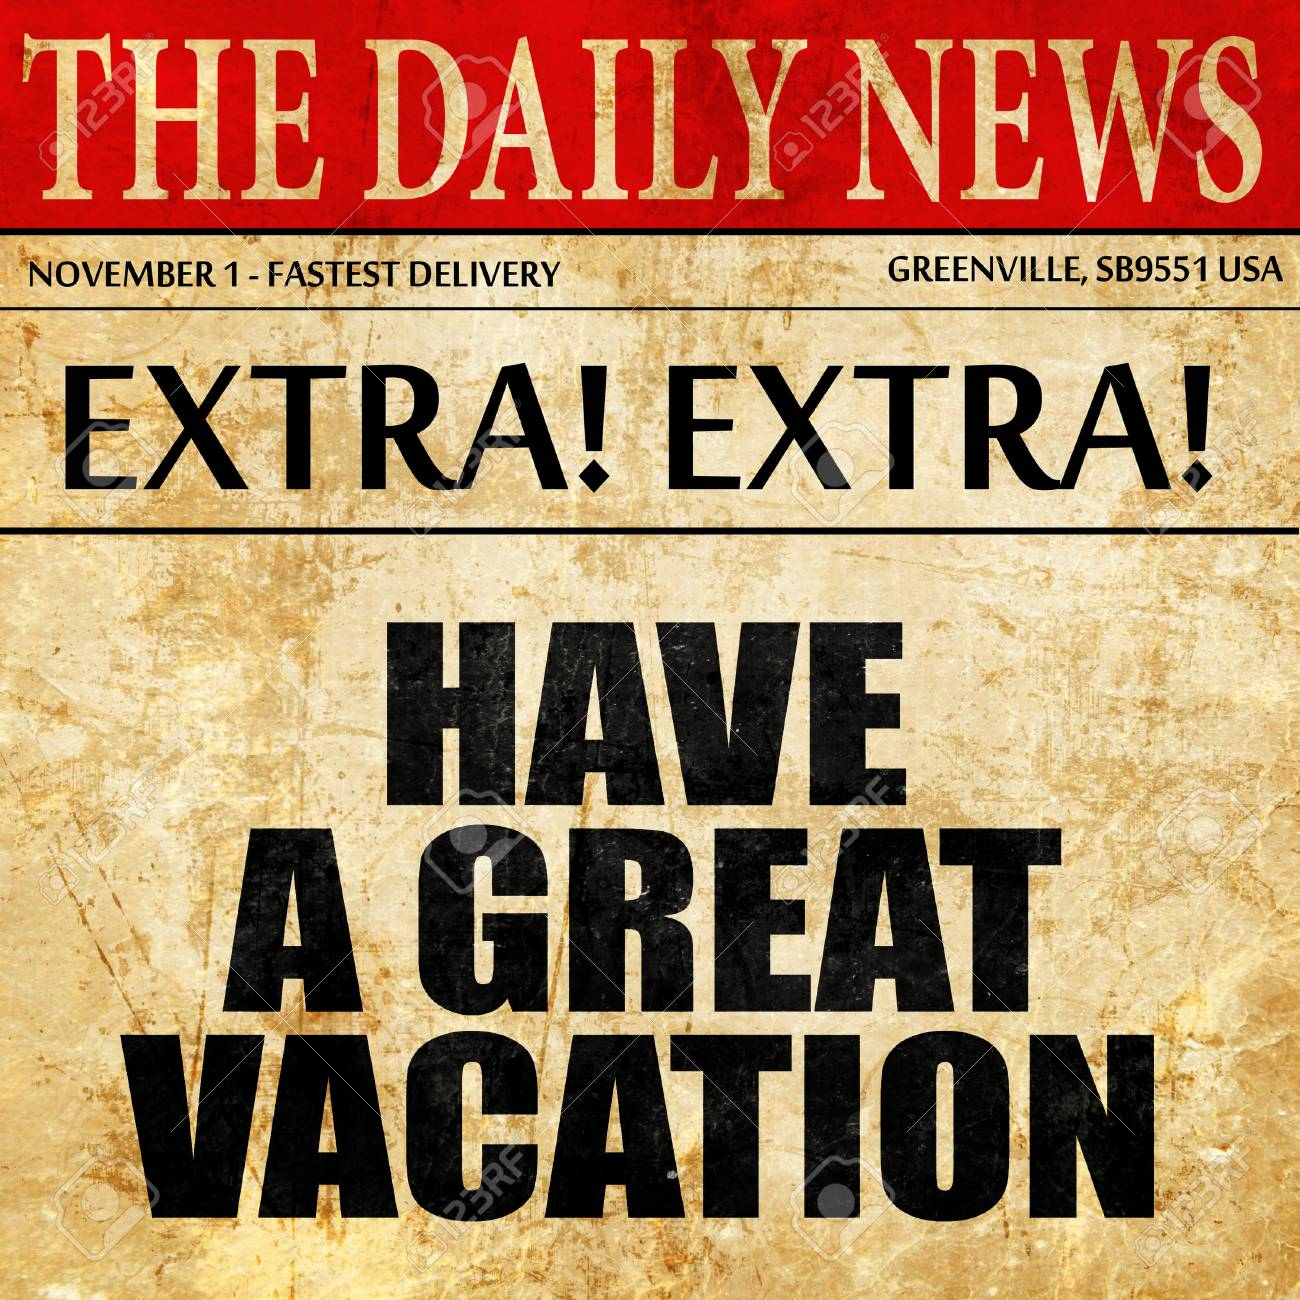 Have A Great Vacation Newspaper Article Text Stock Photo